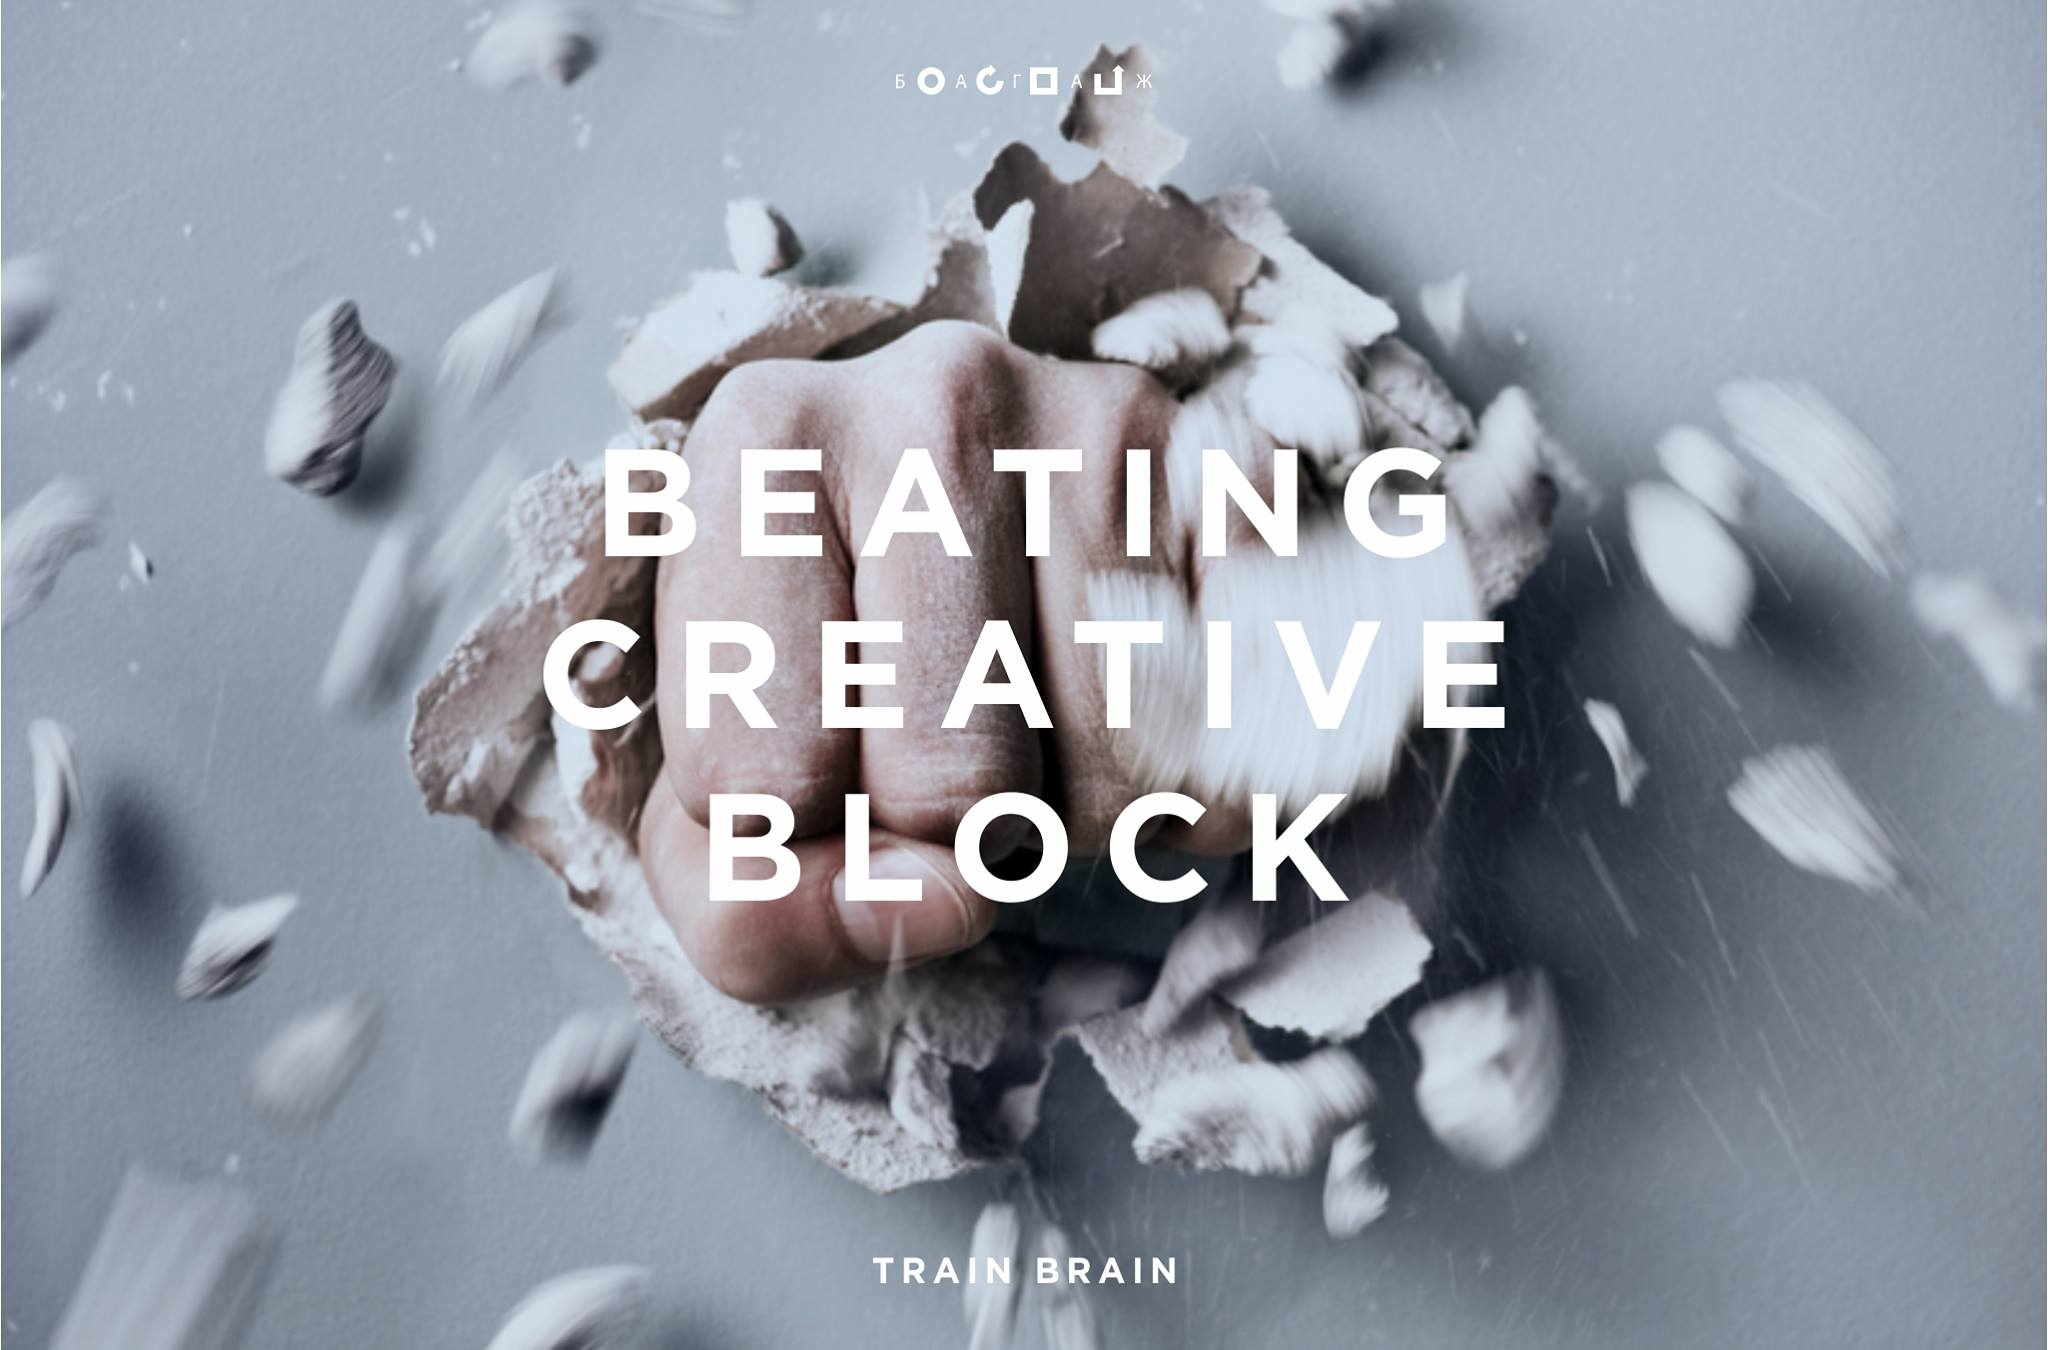 52_november_2017_BEATING CREATIVE BLOCK